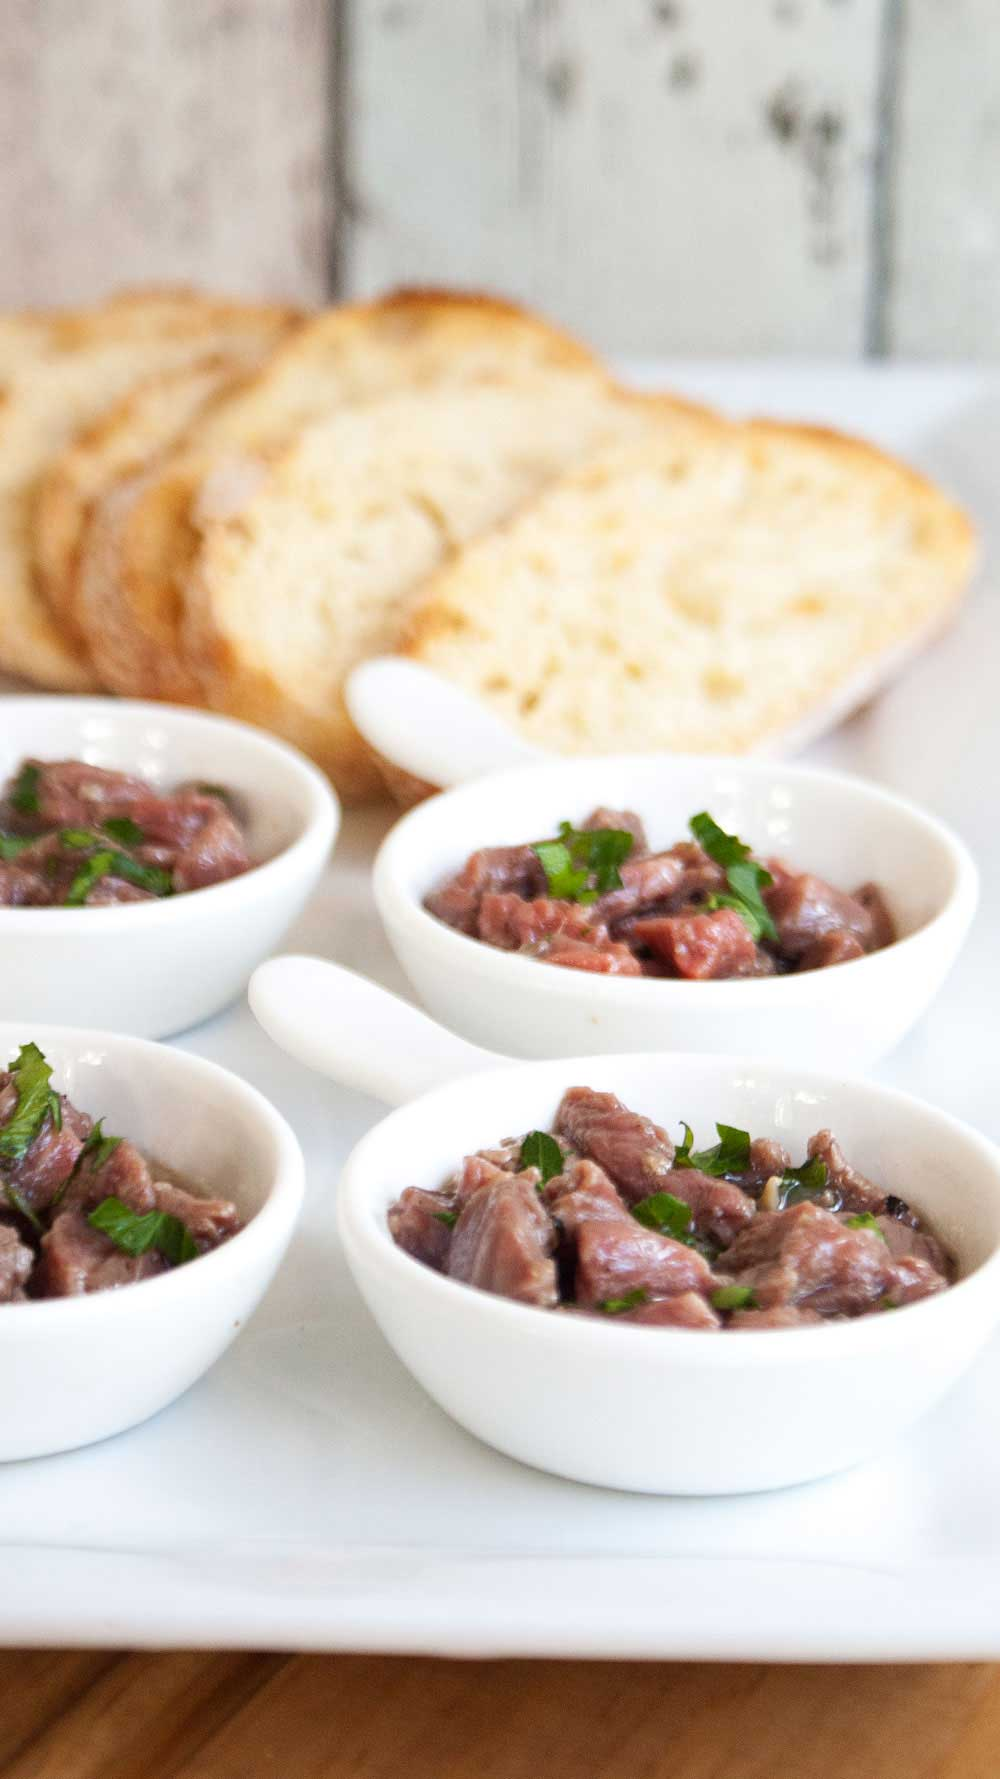 Italian Carne Cruda - An Italian Beef Appetizer | Sprinkles and Sprouts